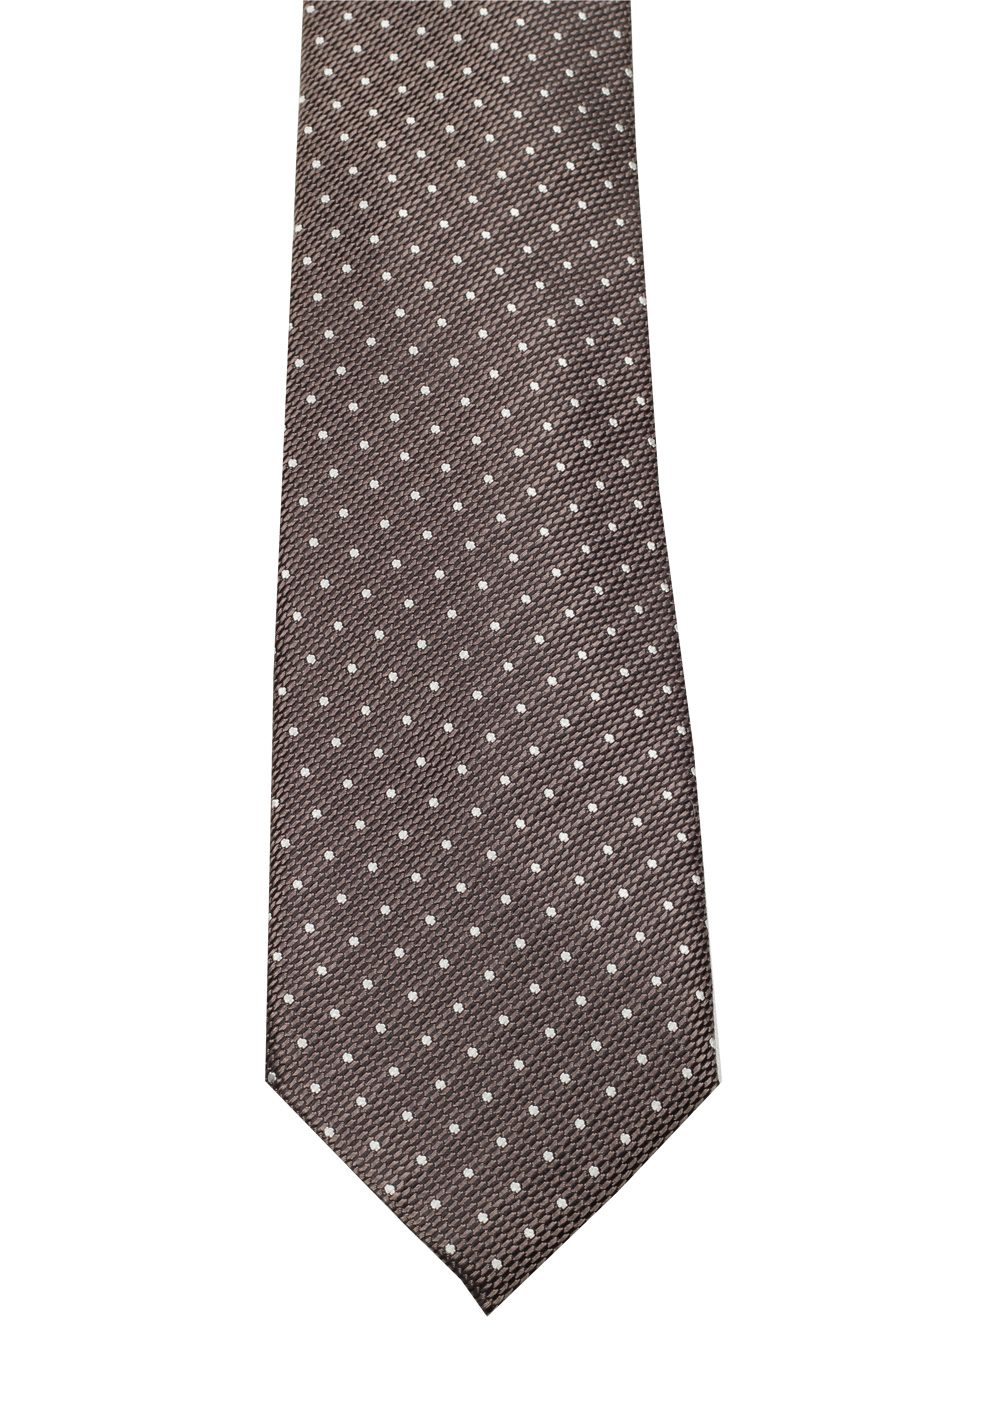 TOM FORD Patterned Brown Tie In Silk | Costume Limité